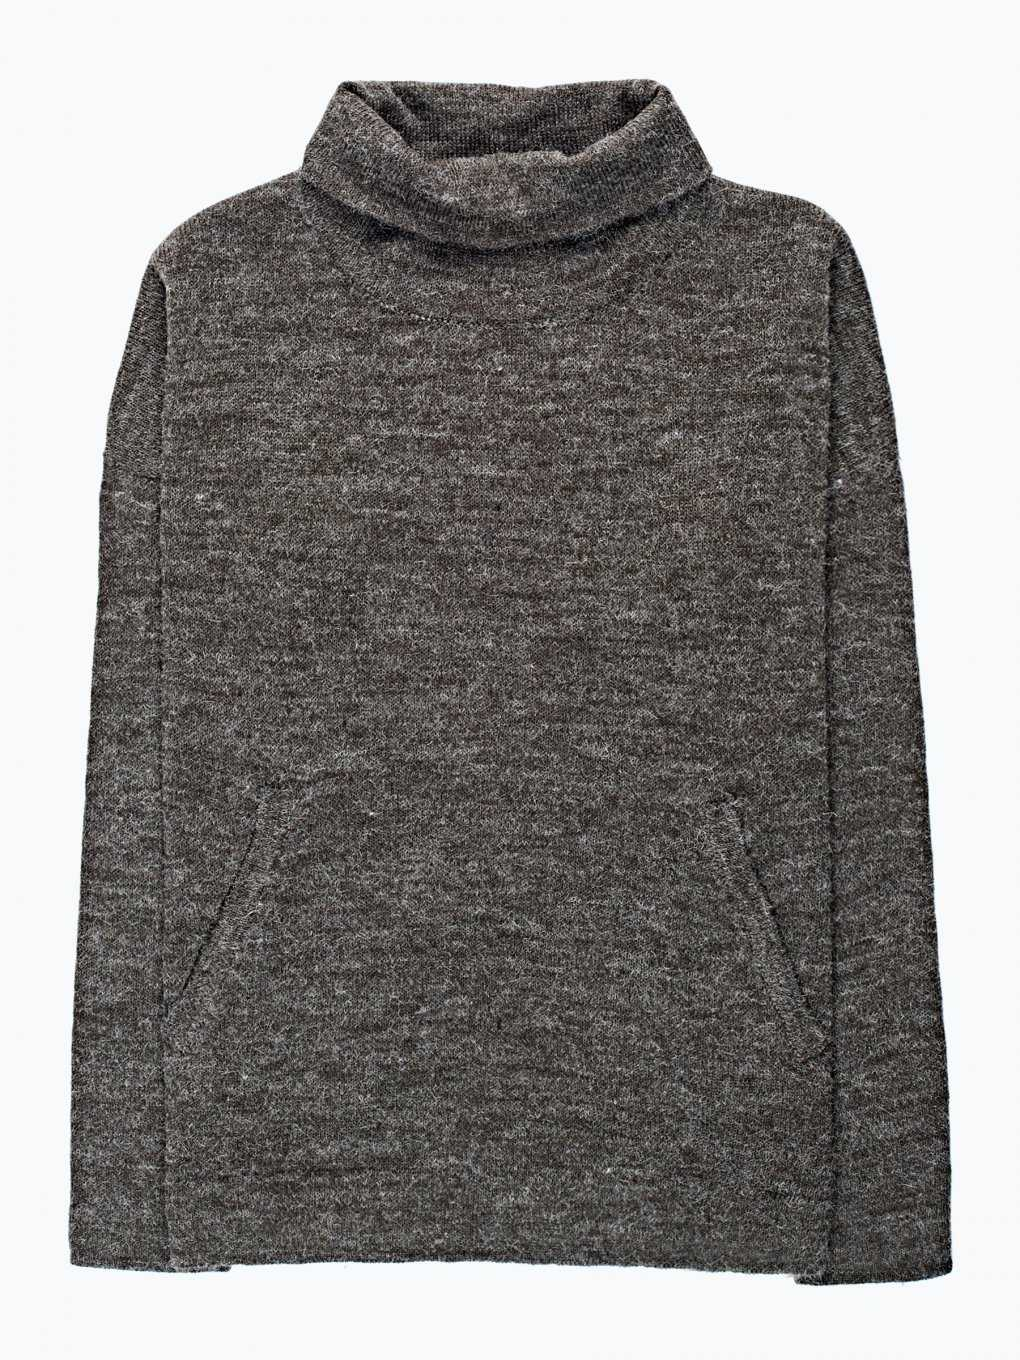 Roll neck jumper with pockets